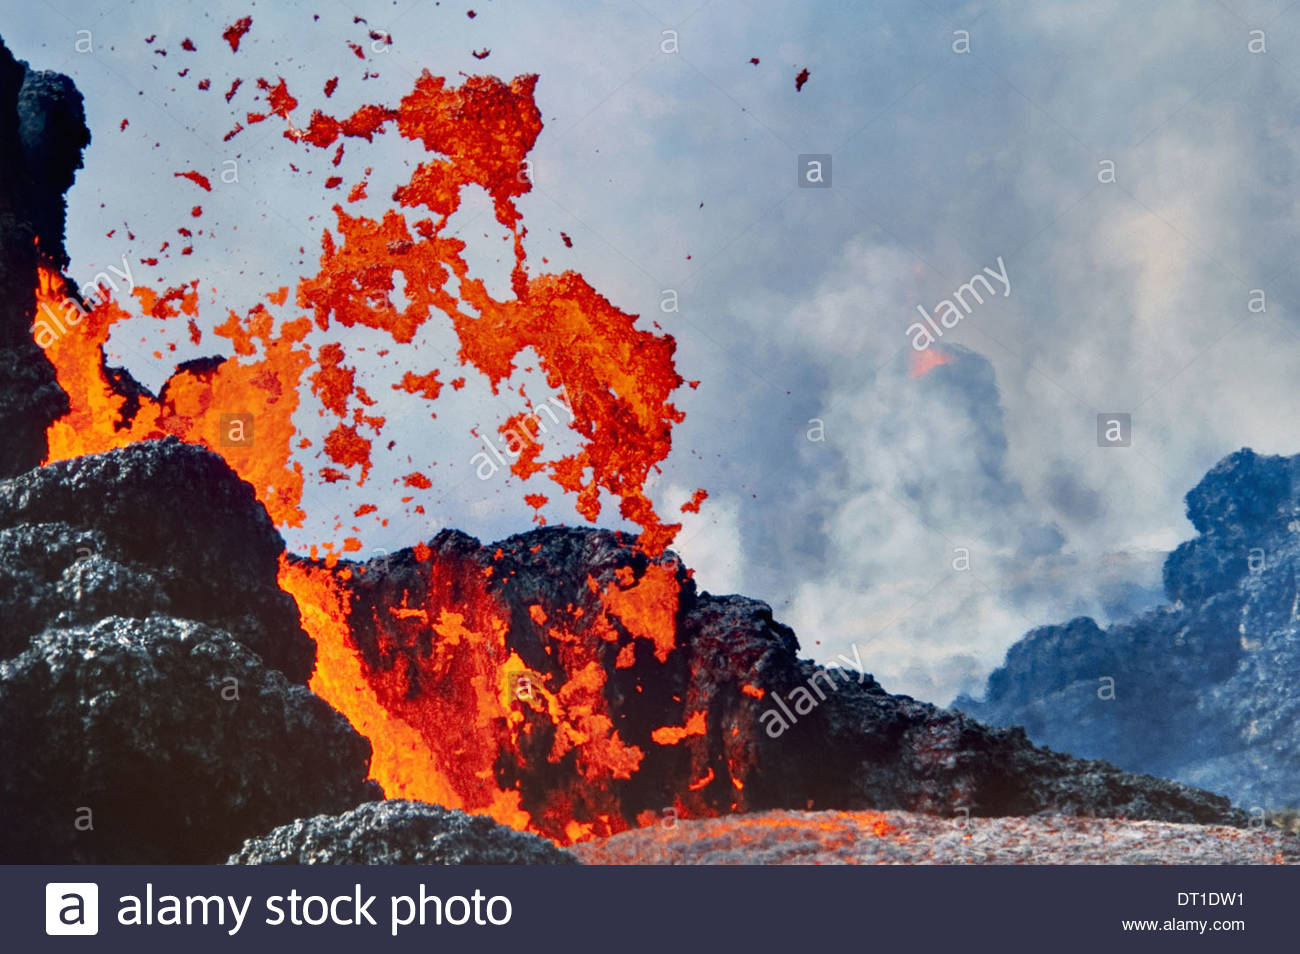 Hawaii Volcanoes National Park Hawaii Erupting lava Hawaii Volcanoes National Park - Stock Image